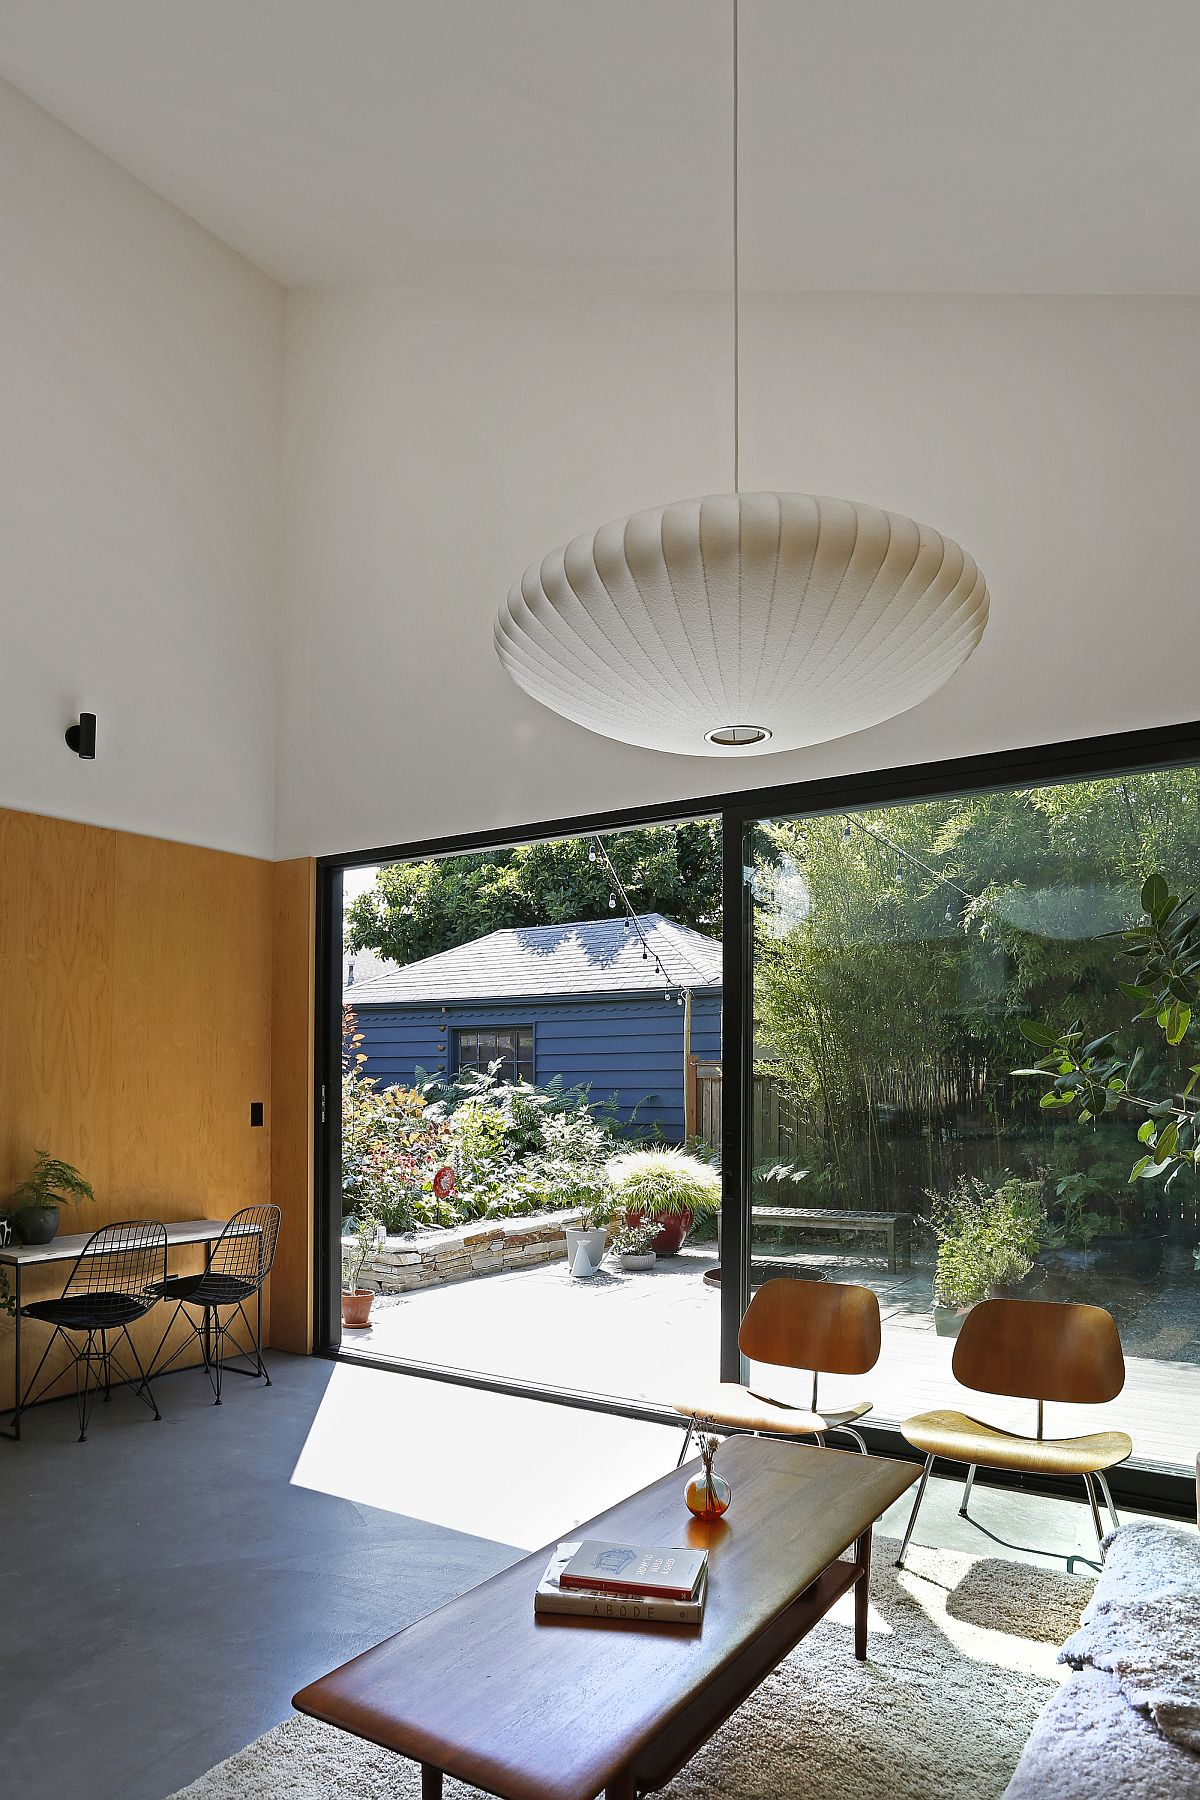 Minimal decor and a space-conscious deisgn give the small living room a larger visual appeal